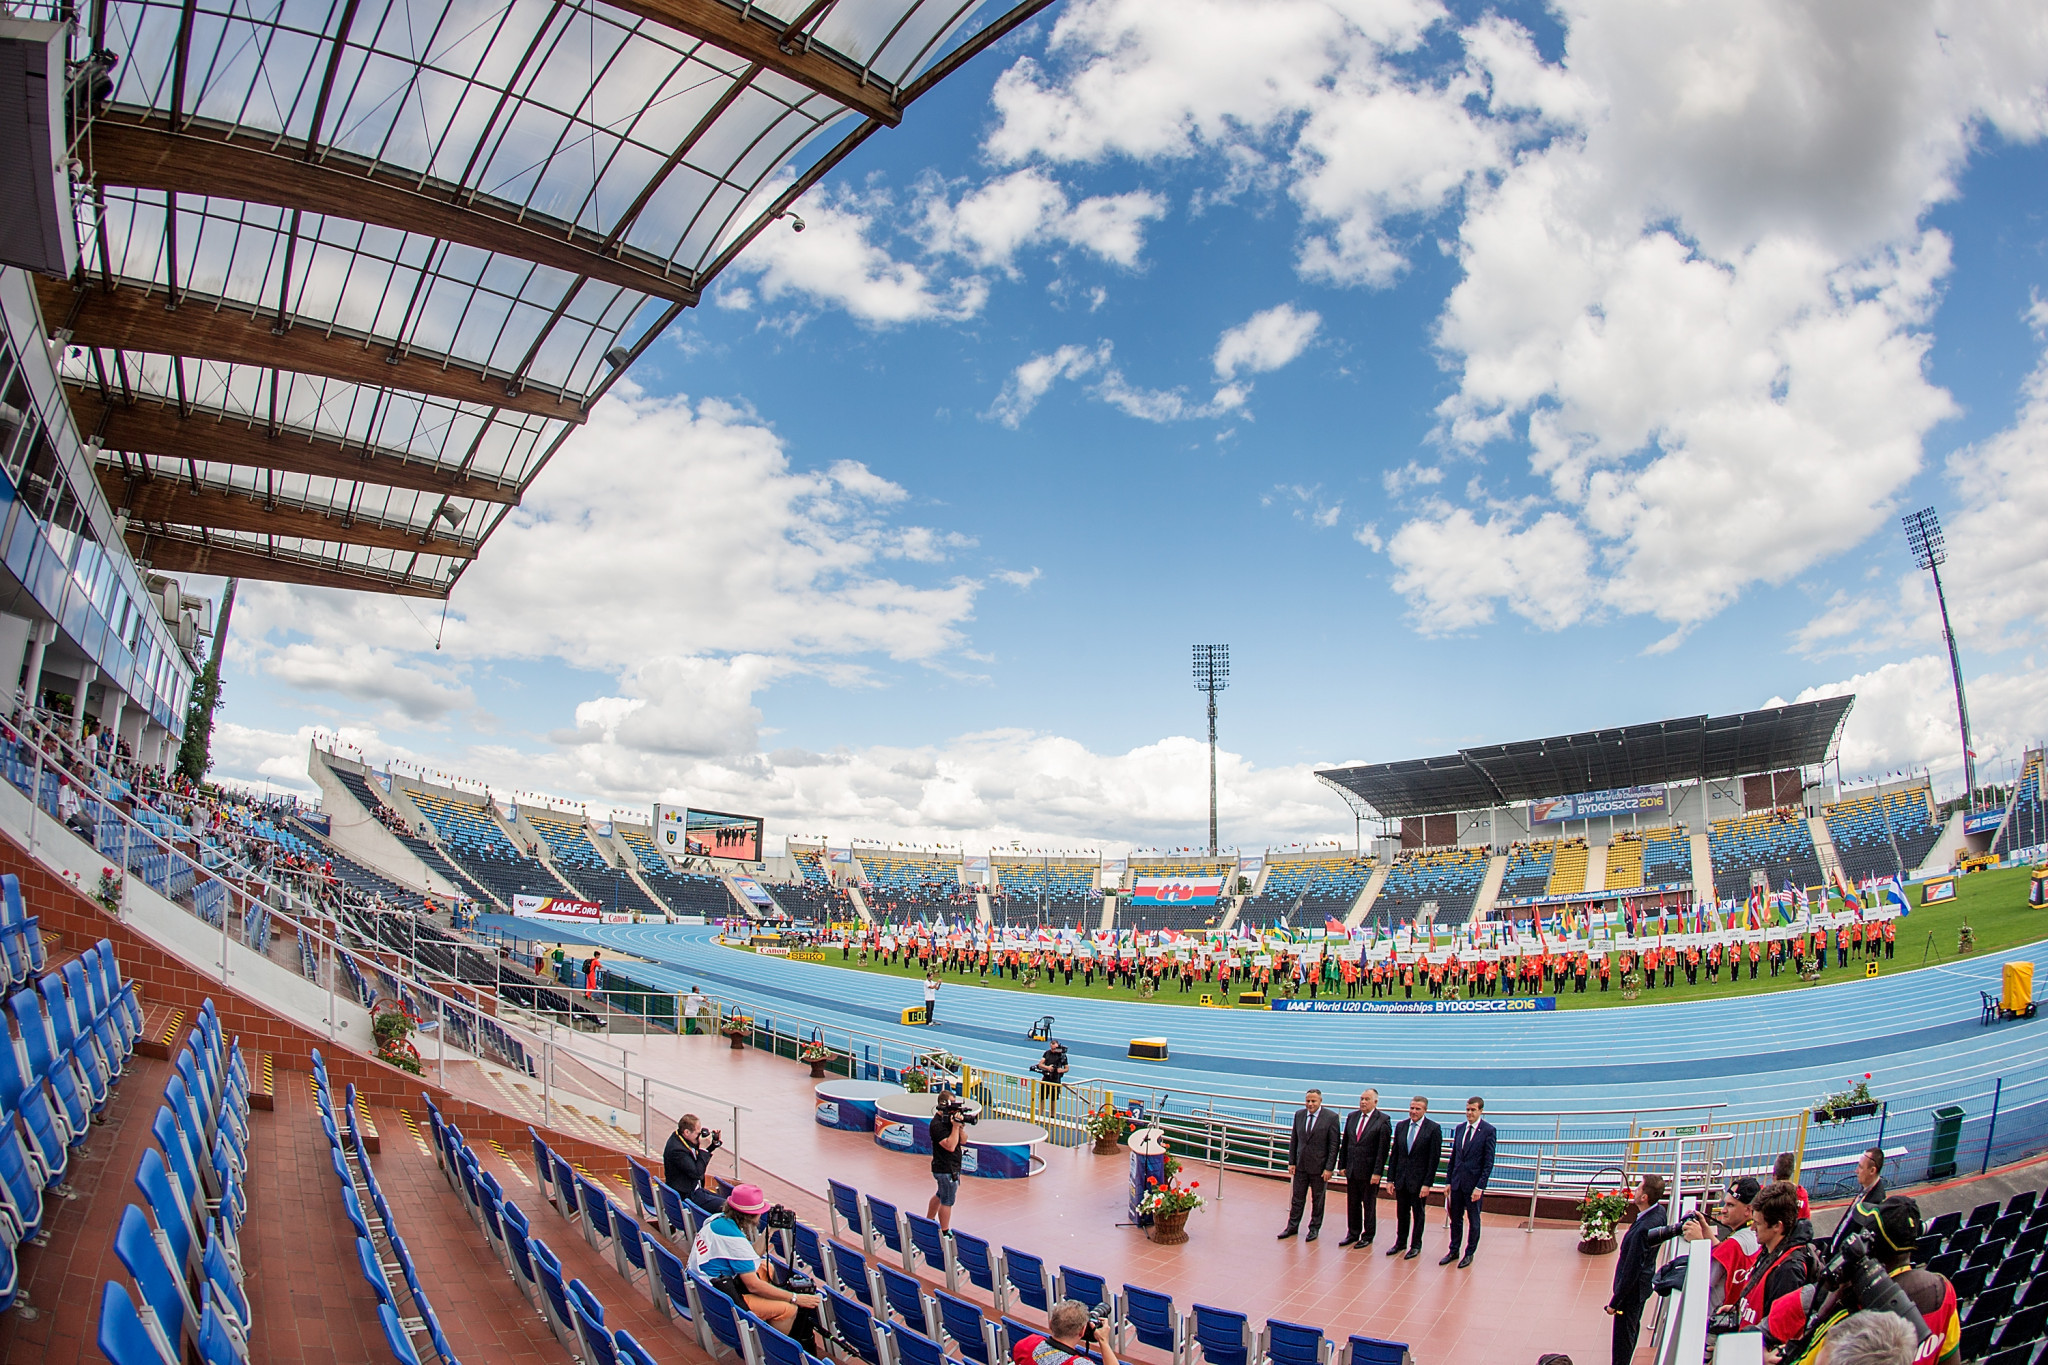 Bydgoszcz ready to host penultimate leg of 2019 World Para Athletics Grand Prix series